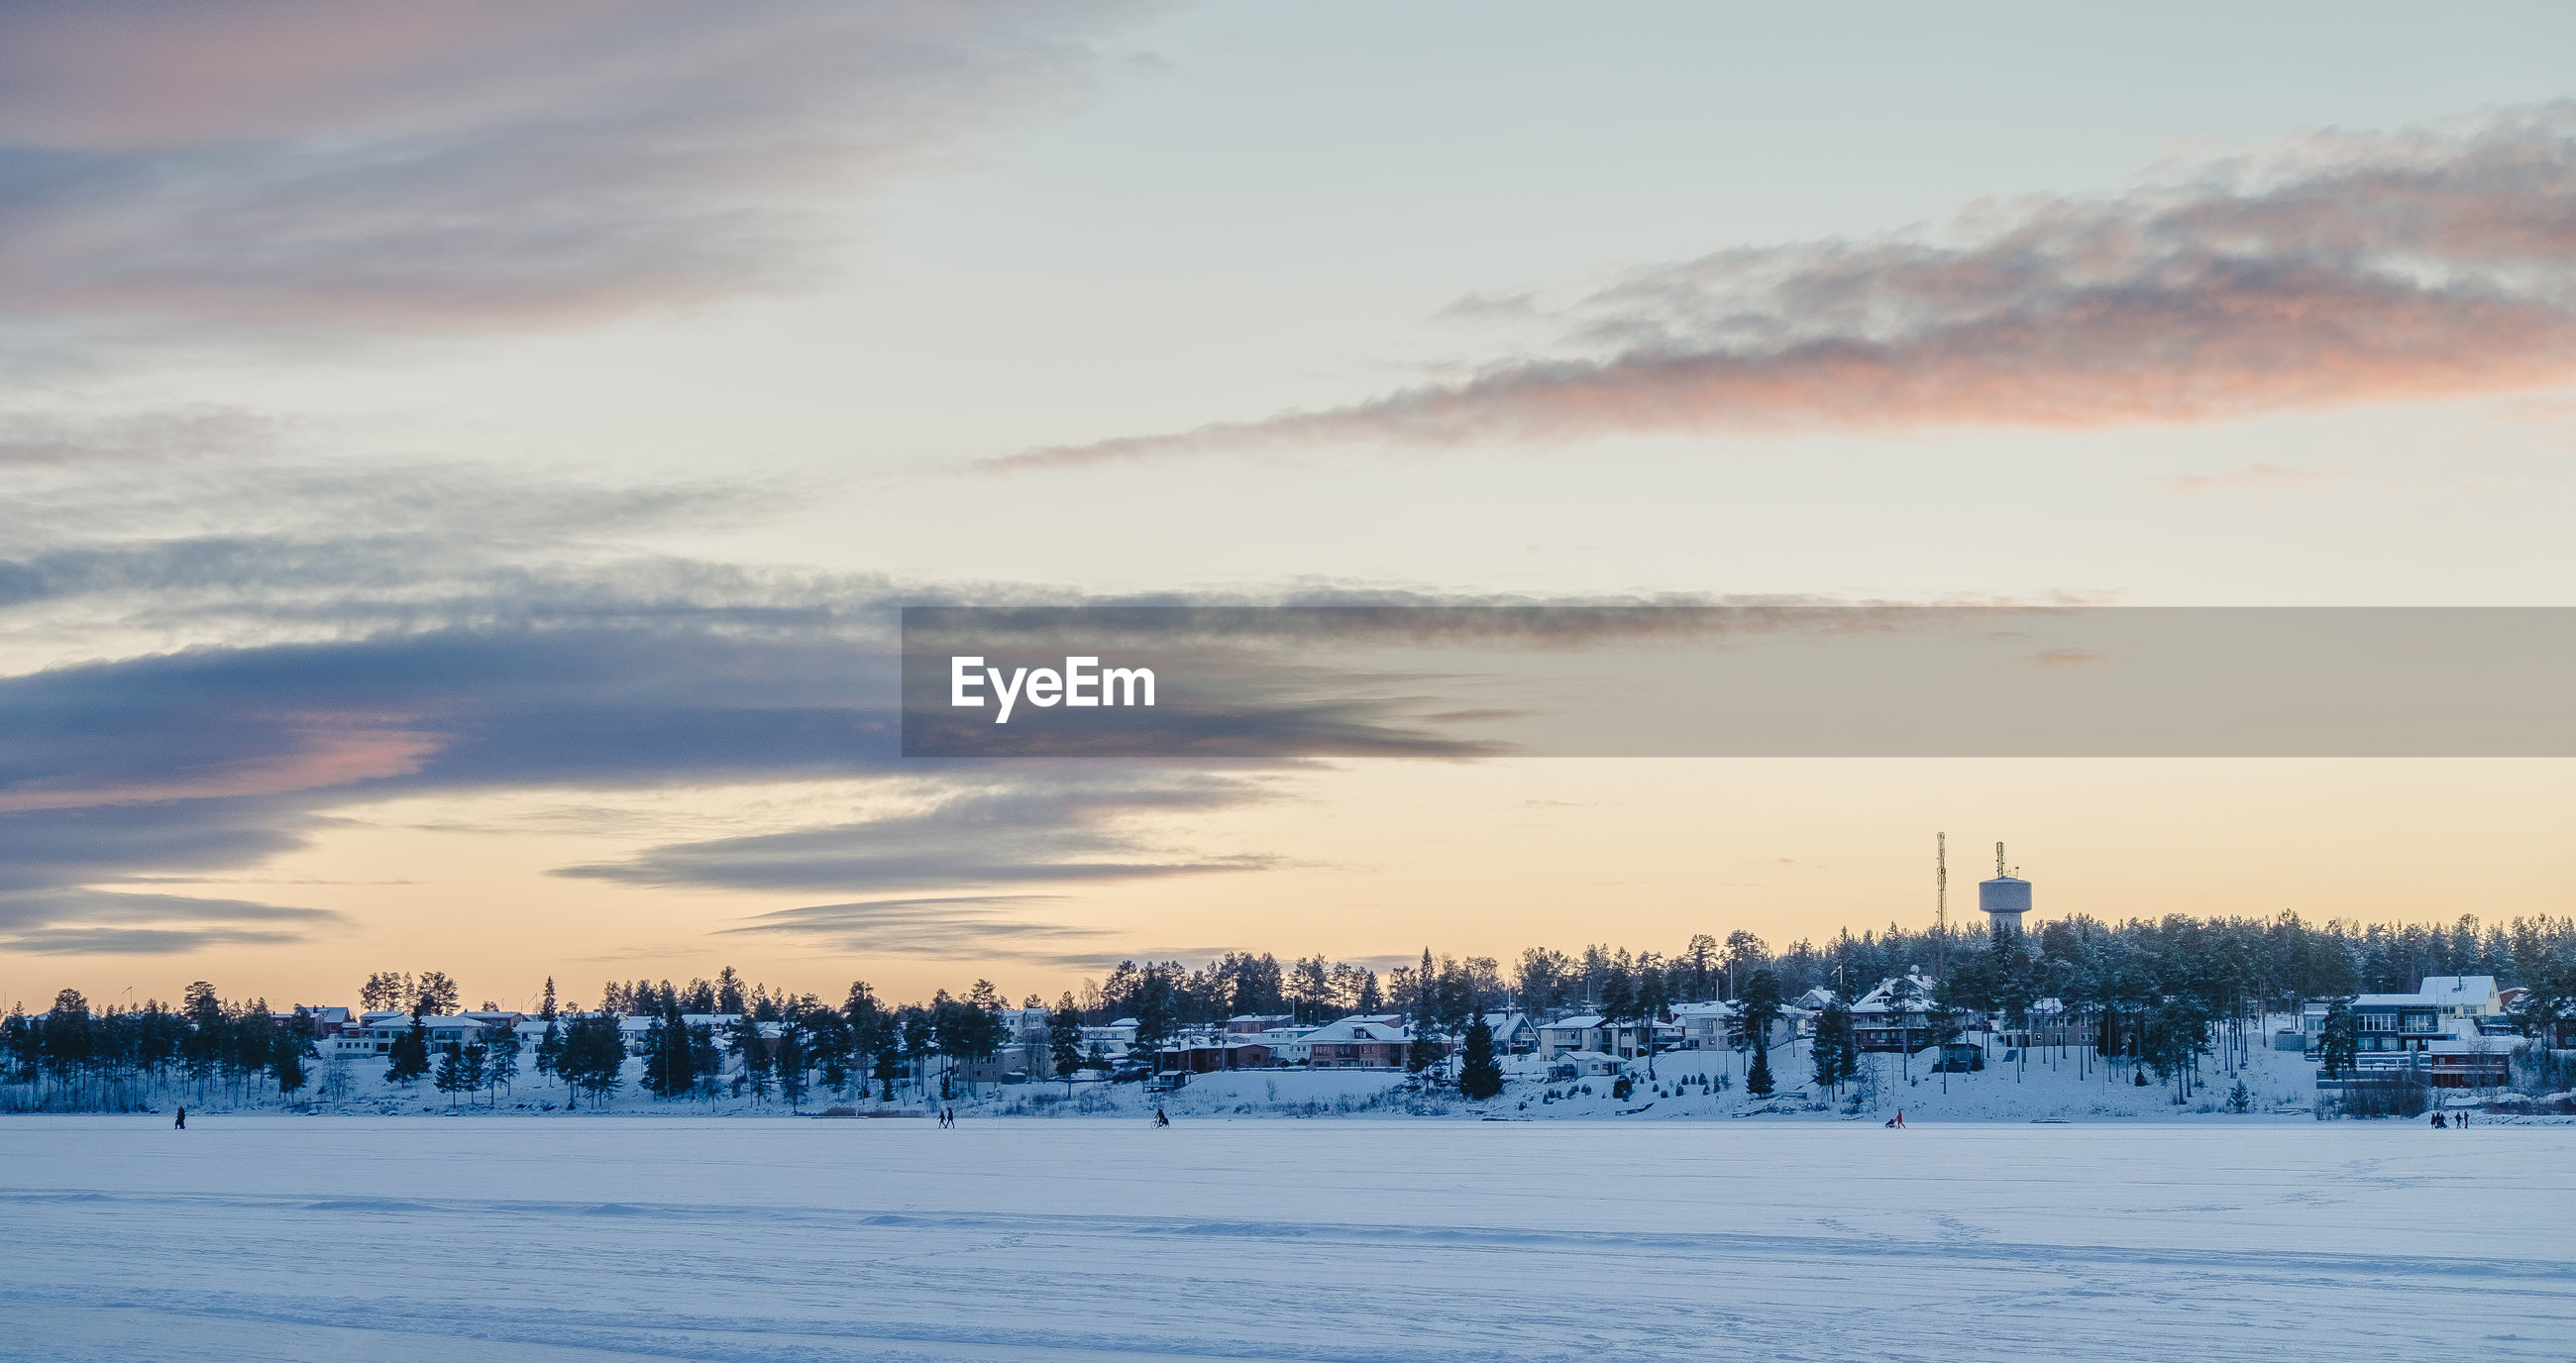 SCENIC VIEW OF SNOWY LANDSCAPE AGAINST SKY DURING SUNSET